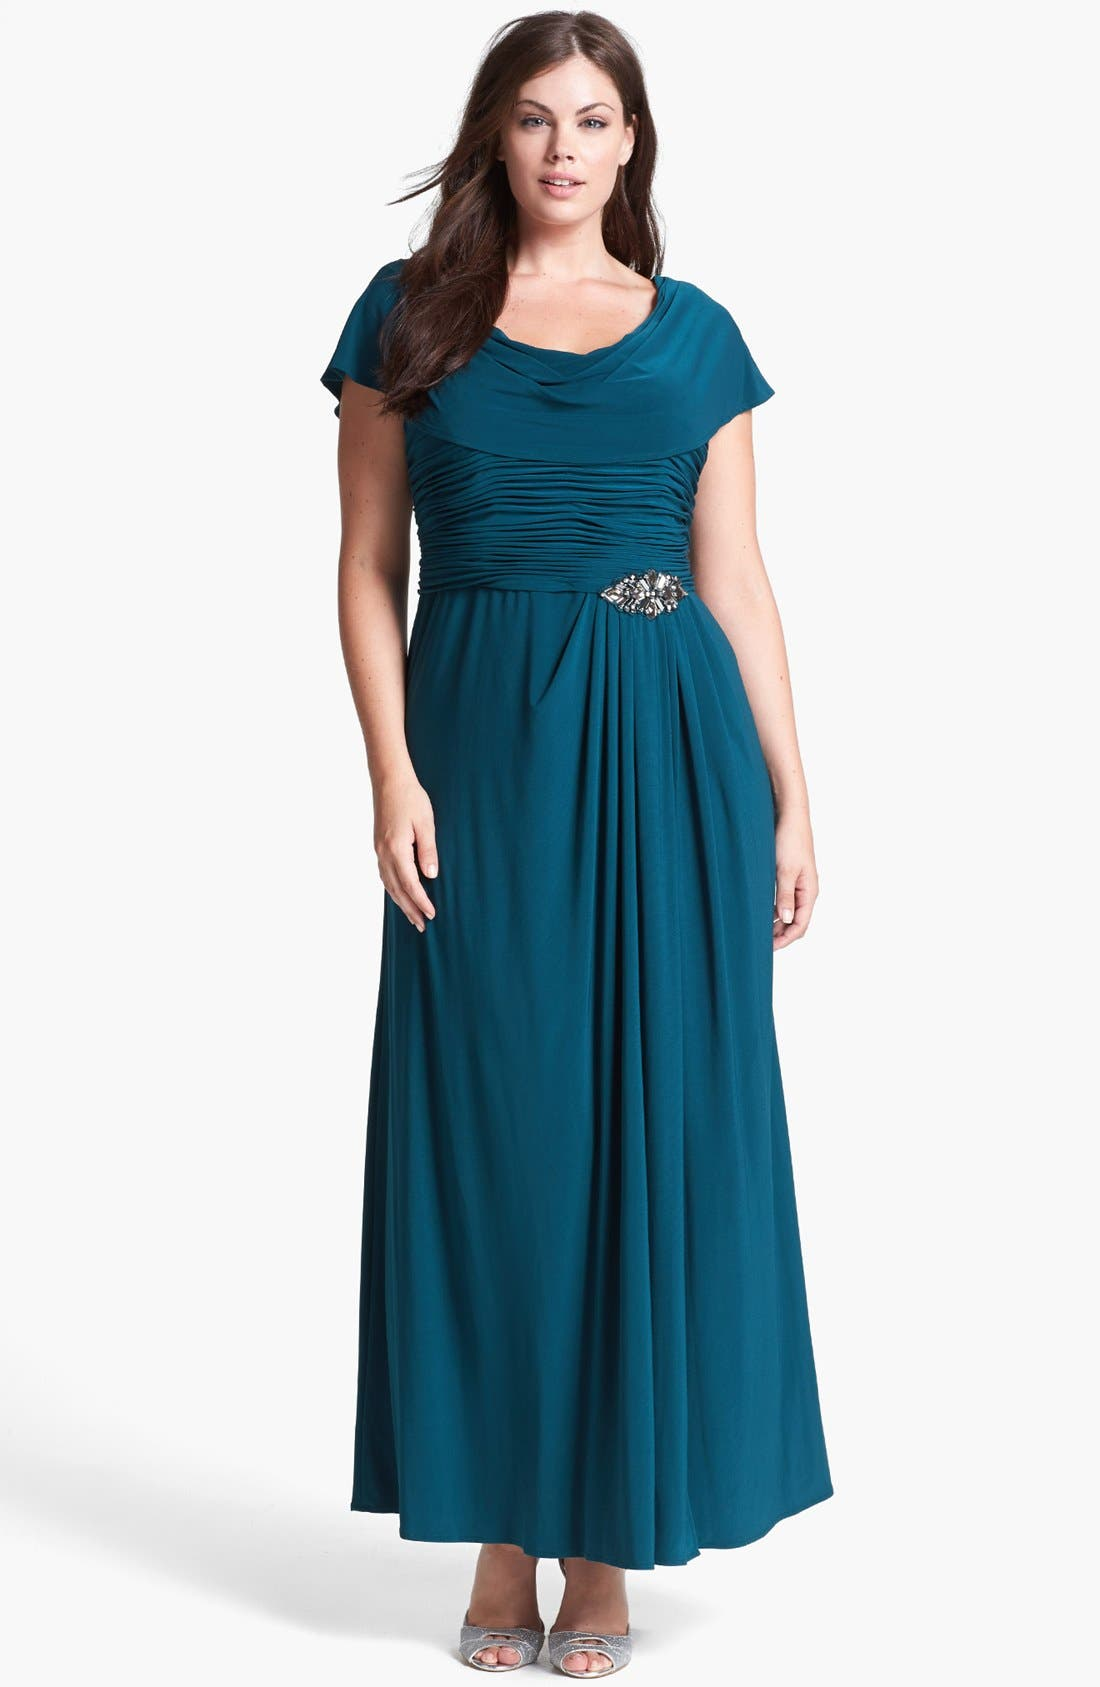 Alternate Image 1 Selected - Patra Draped Neckline Embellished Jersey Gown (Plus Size)